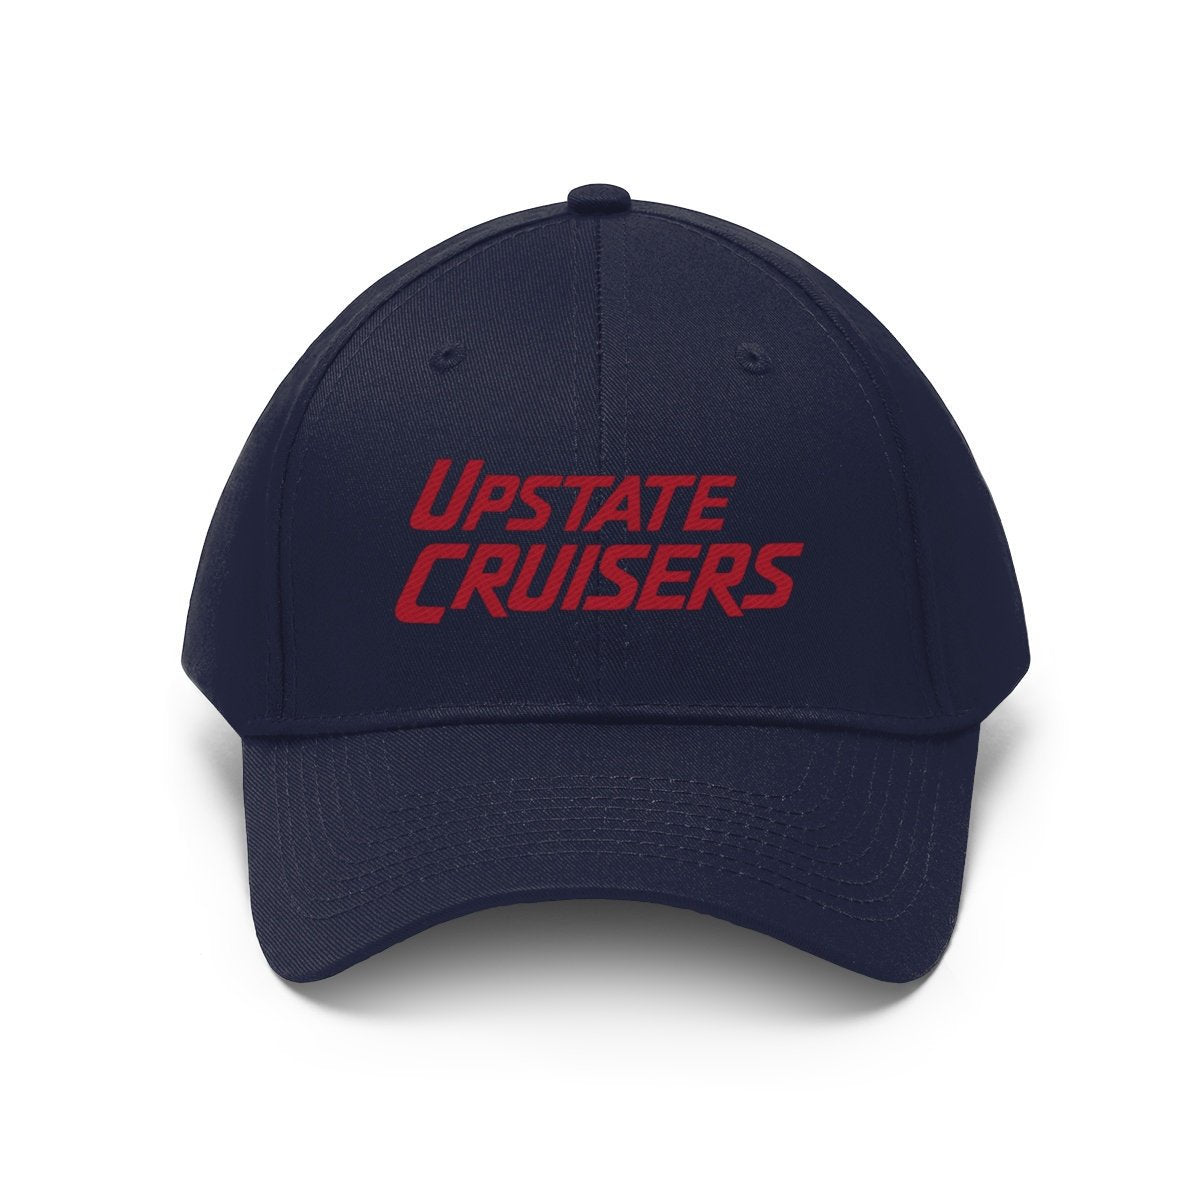 Upstate Cruisers - Embroidered Hat by Reefmonkey Land Cruiser Club Tshirt